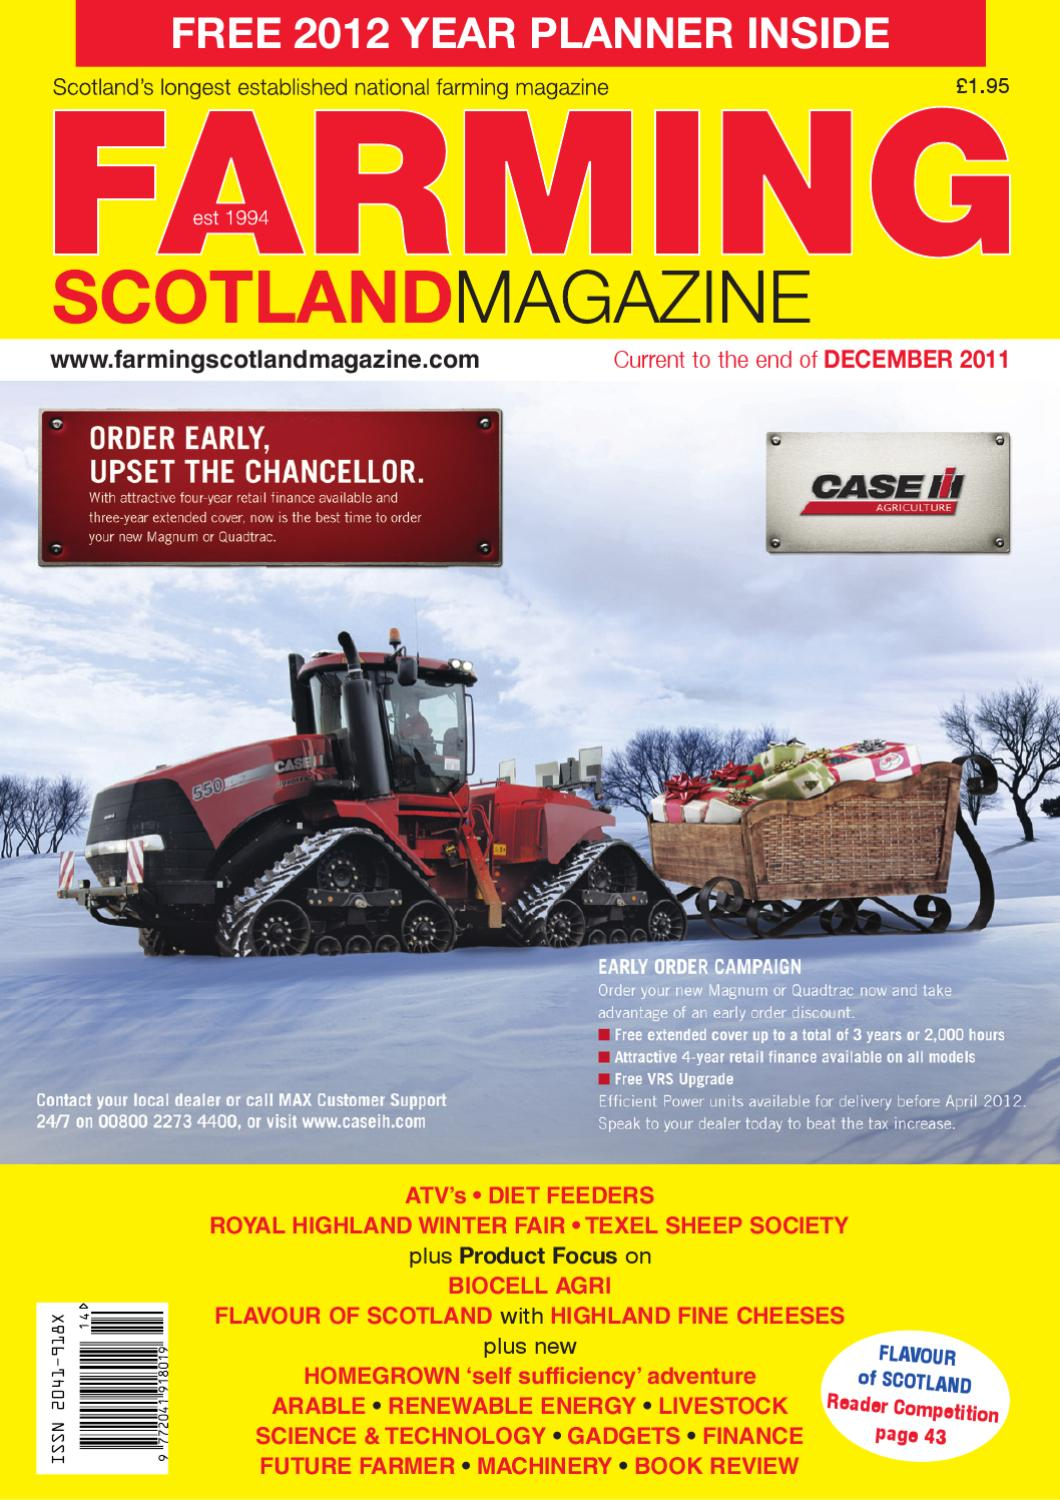 Farming Scotland Magazine Nov December 2011 By Athole Design March 29 2006 Circuitmaster 1 Comment Publishing Ltd Issuu